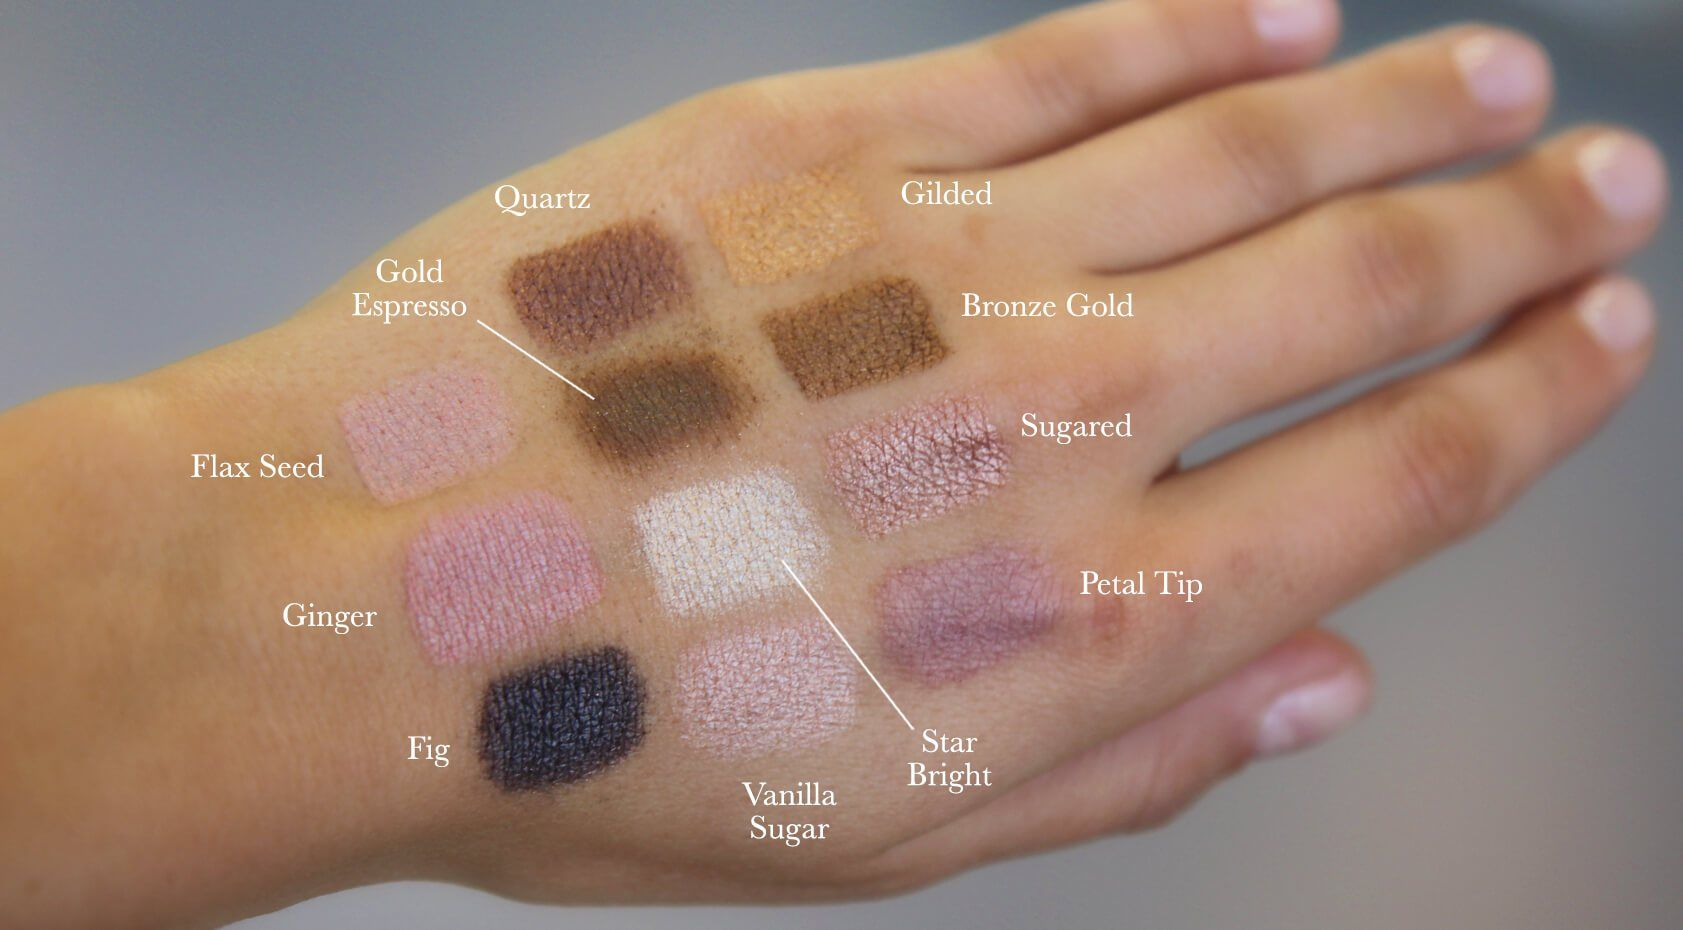 100 Percent Pure Lip and Cheek Tint Swatches Pure